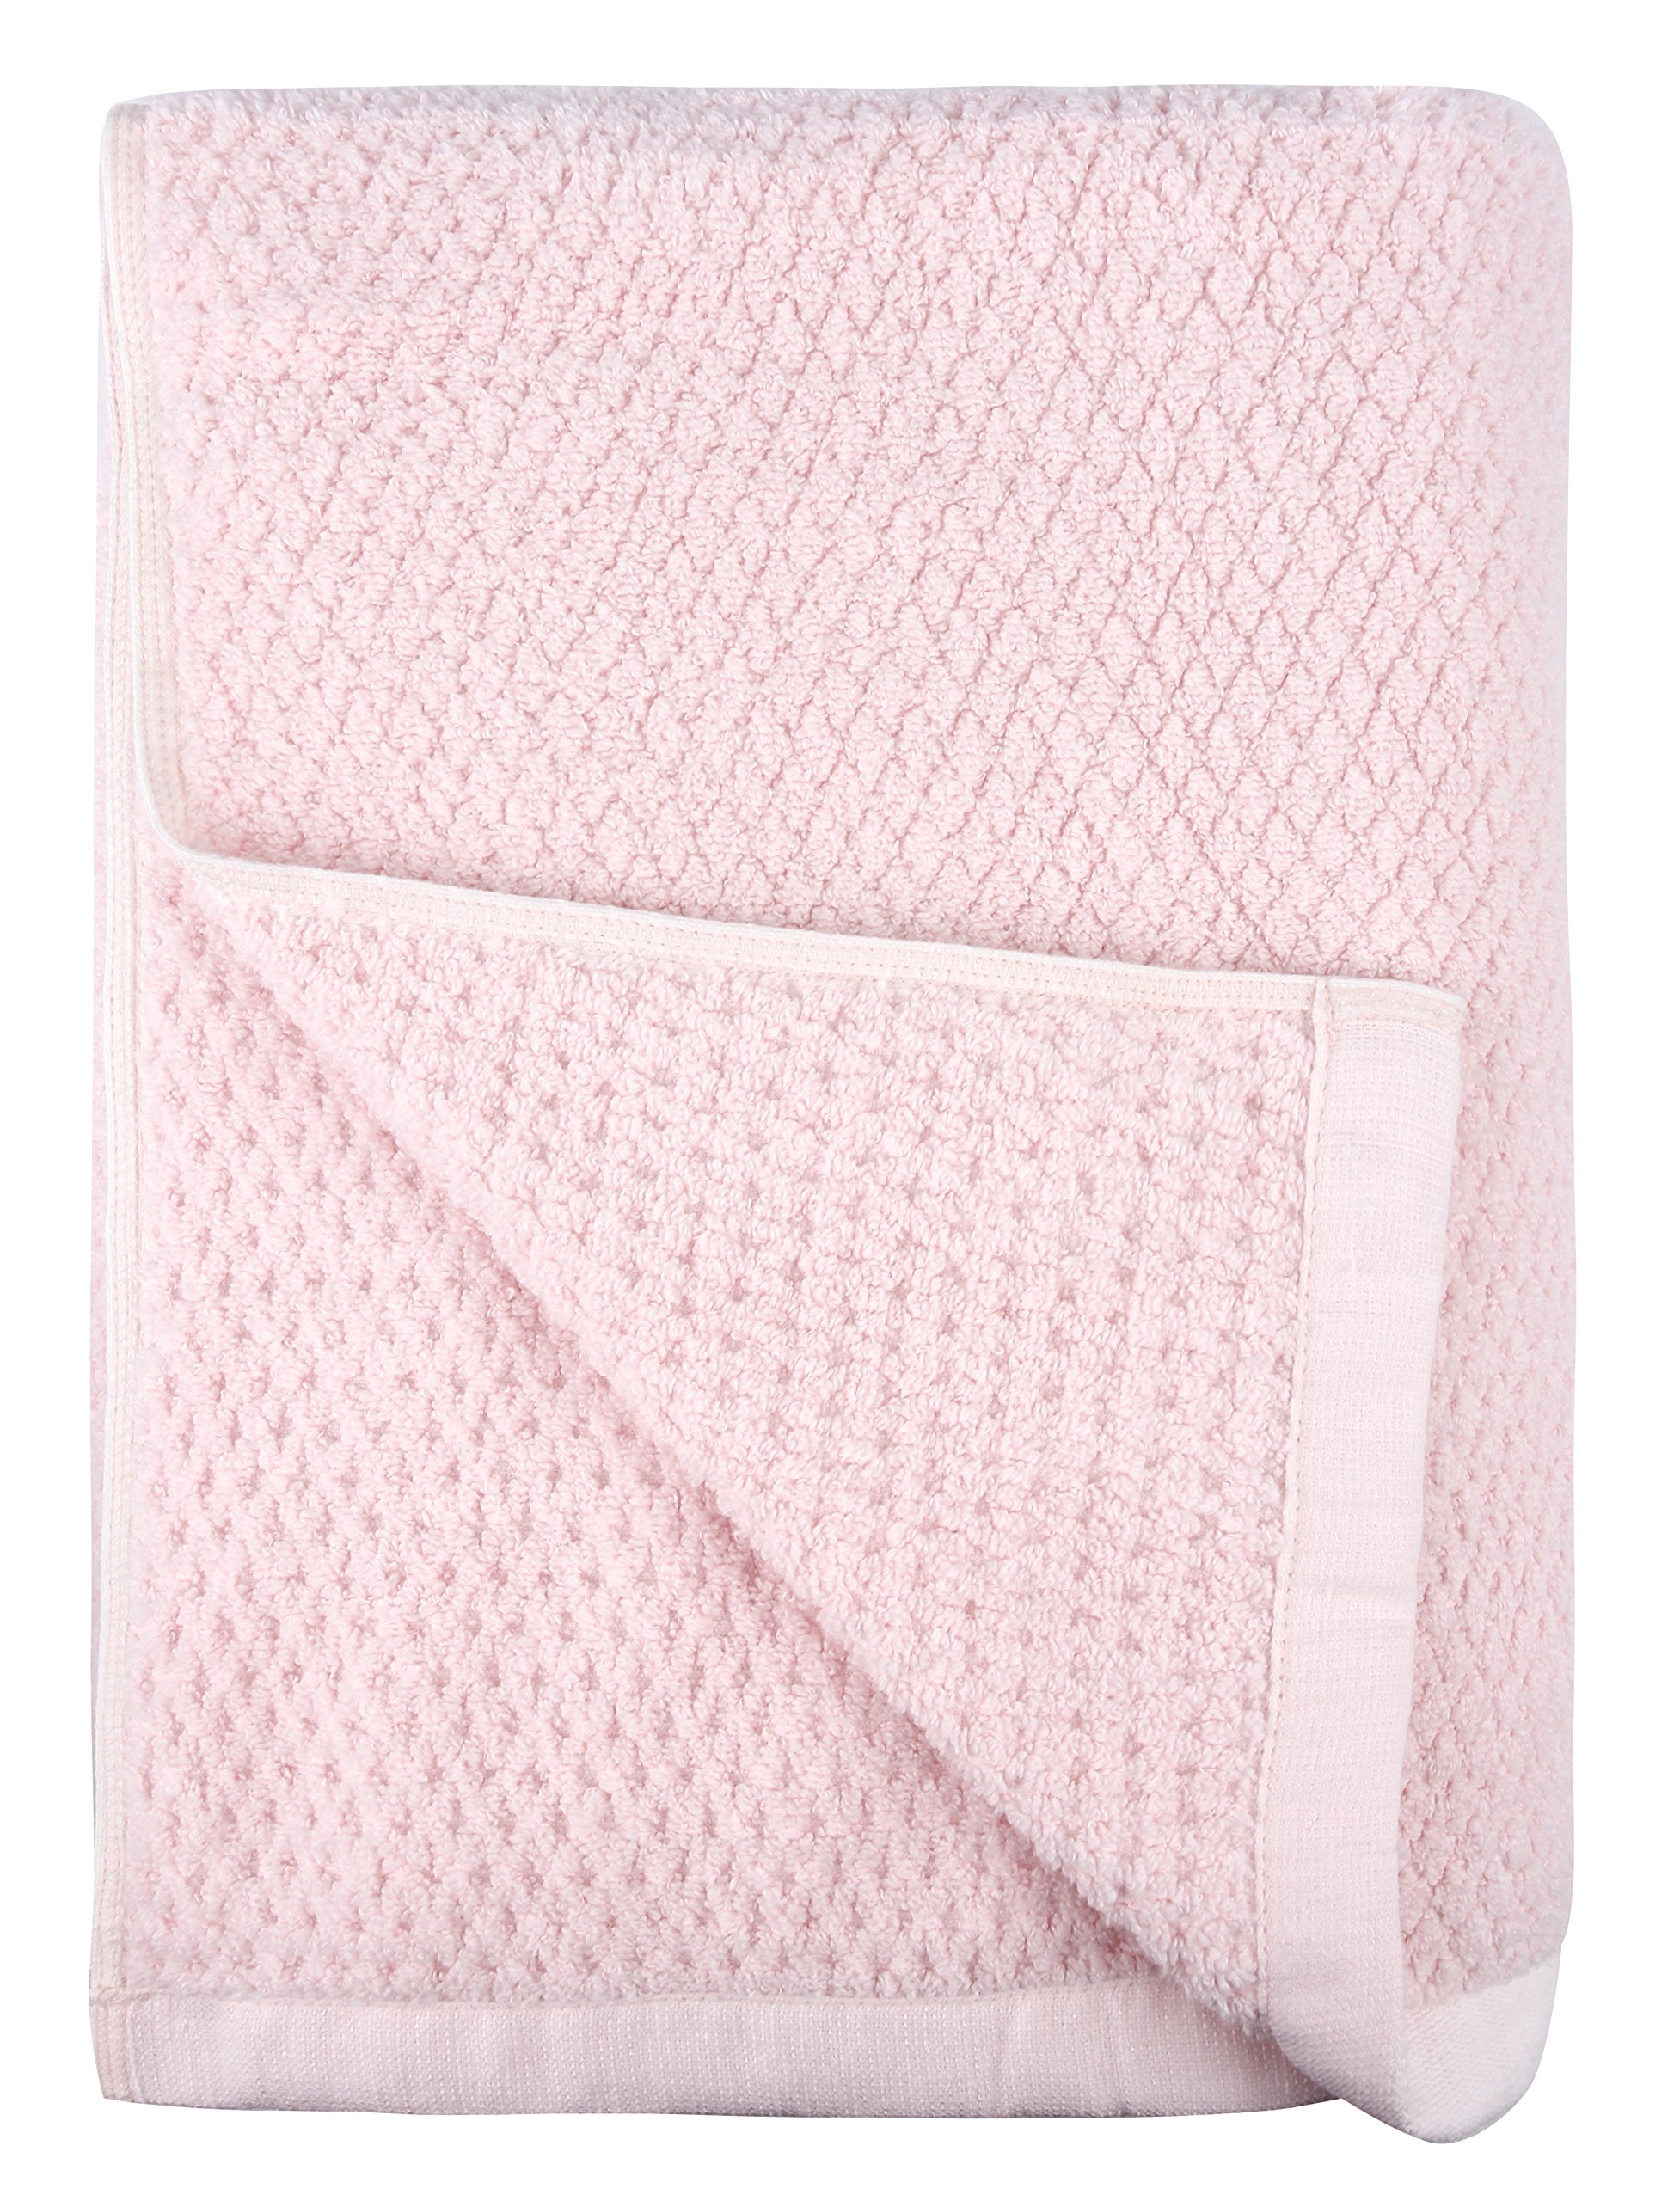 Everplush Diamond Jacquard Bath Sheet in Light Pink